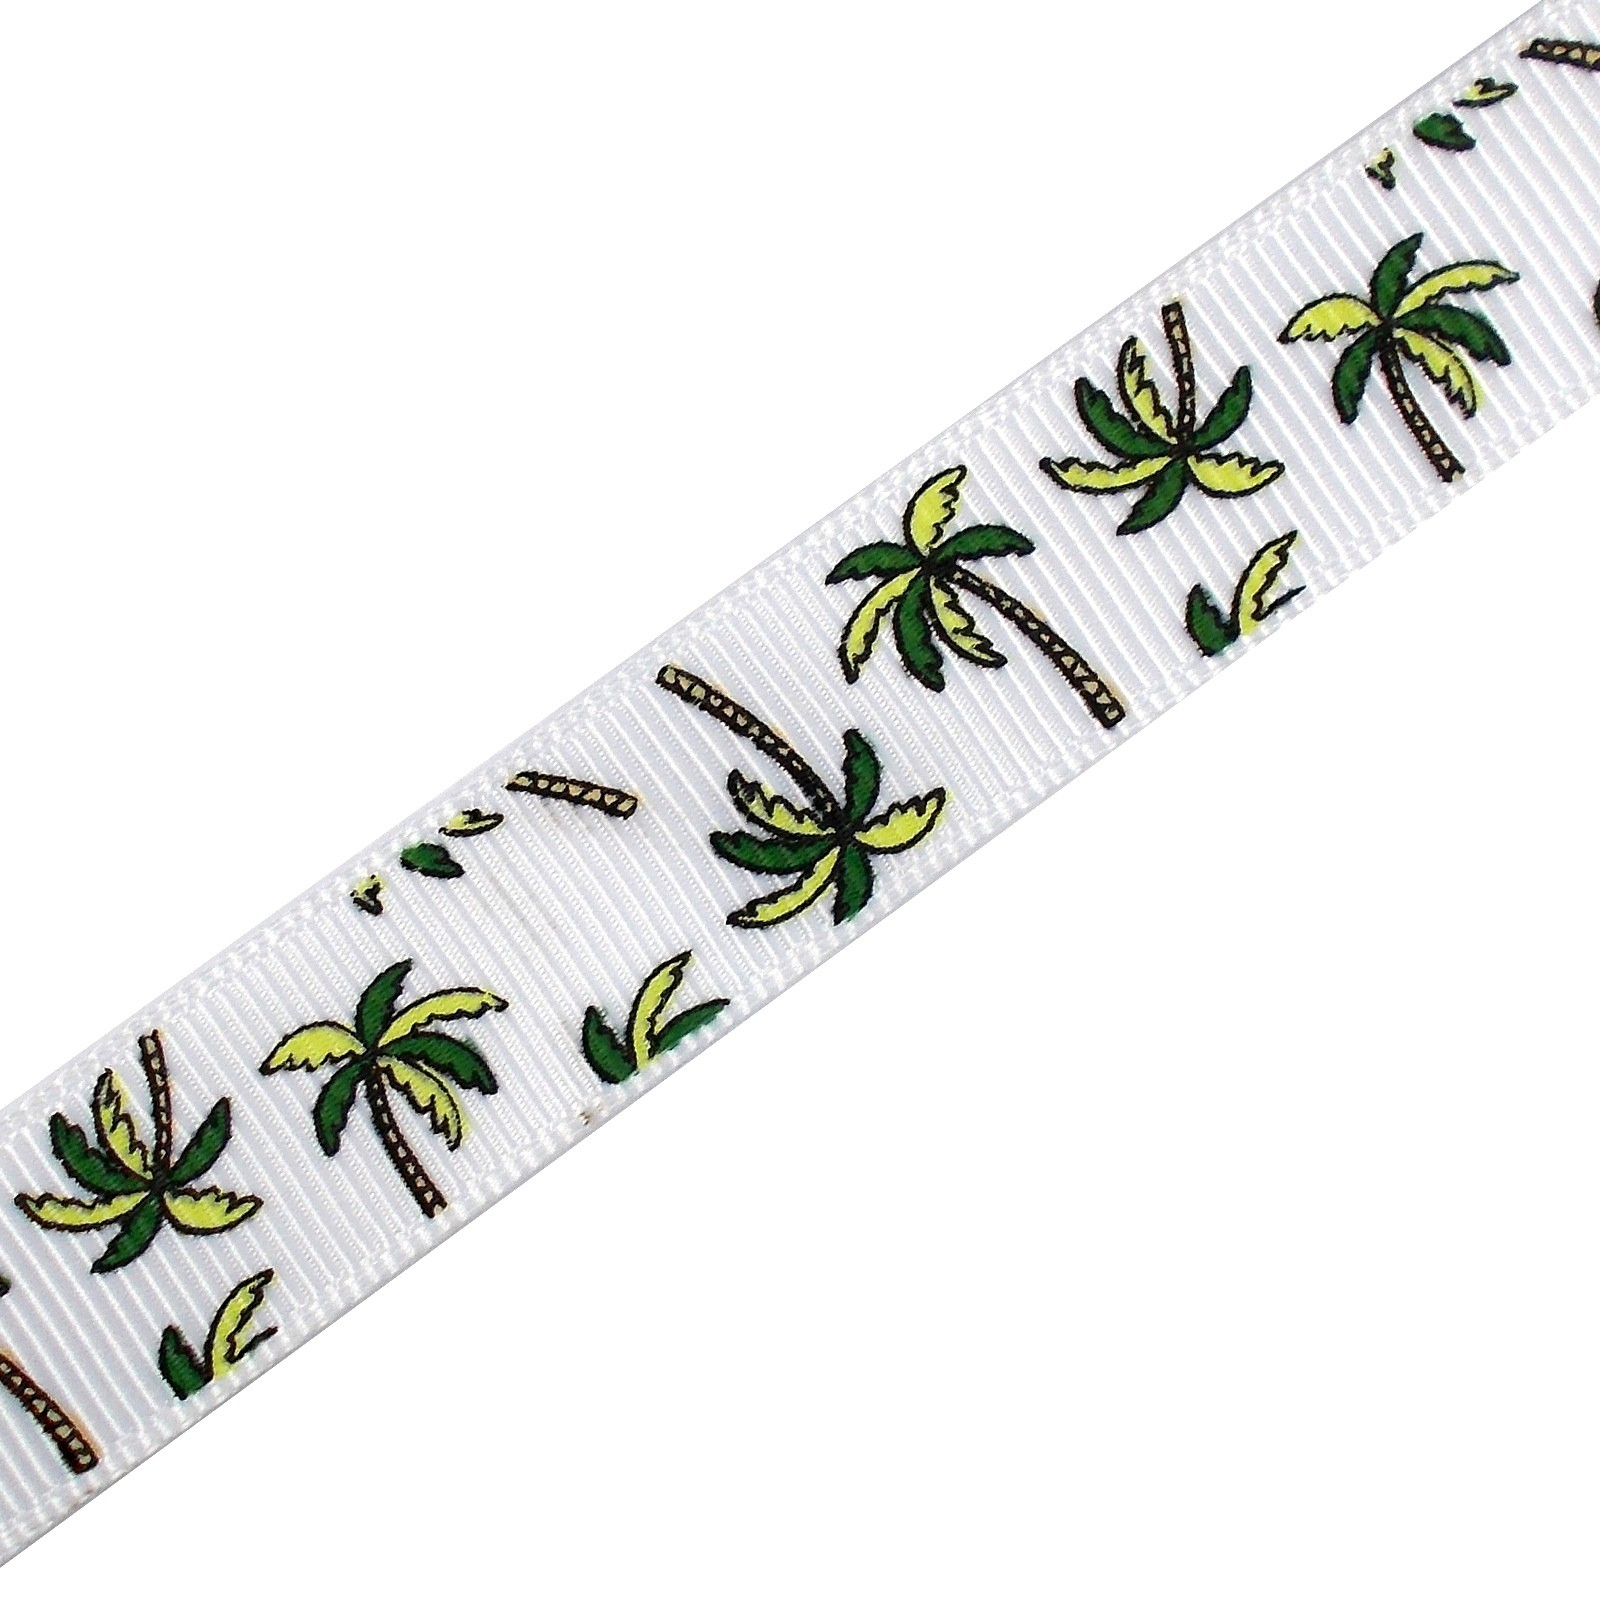 Tropical Print Grosgrain Ribbon 16mm Wide Palm Trees 1 metre length